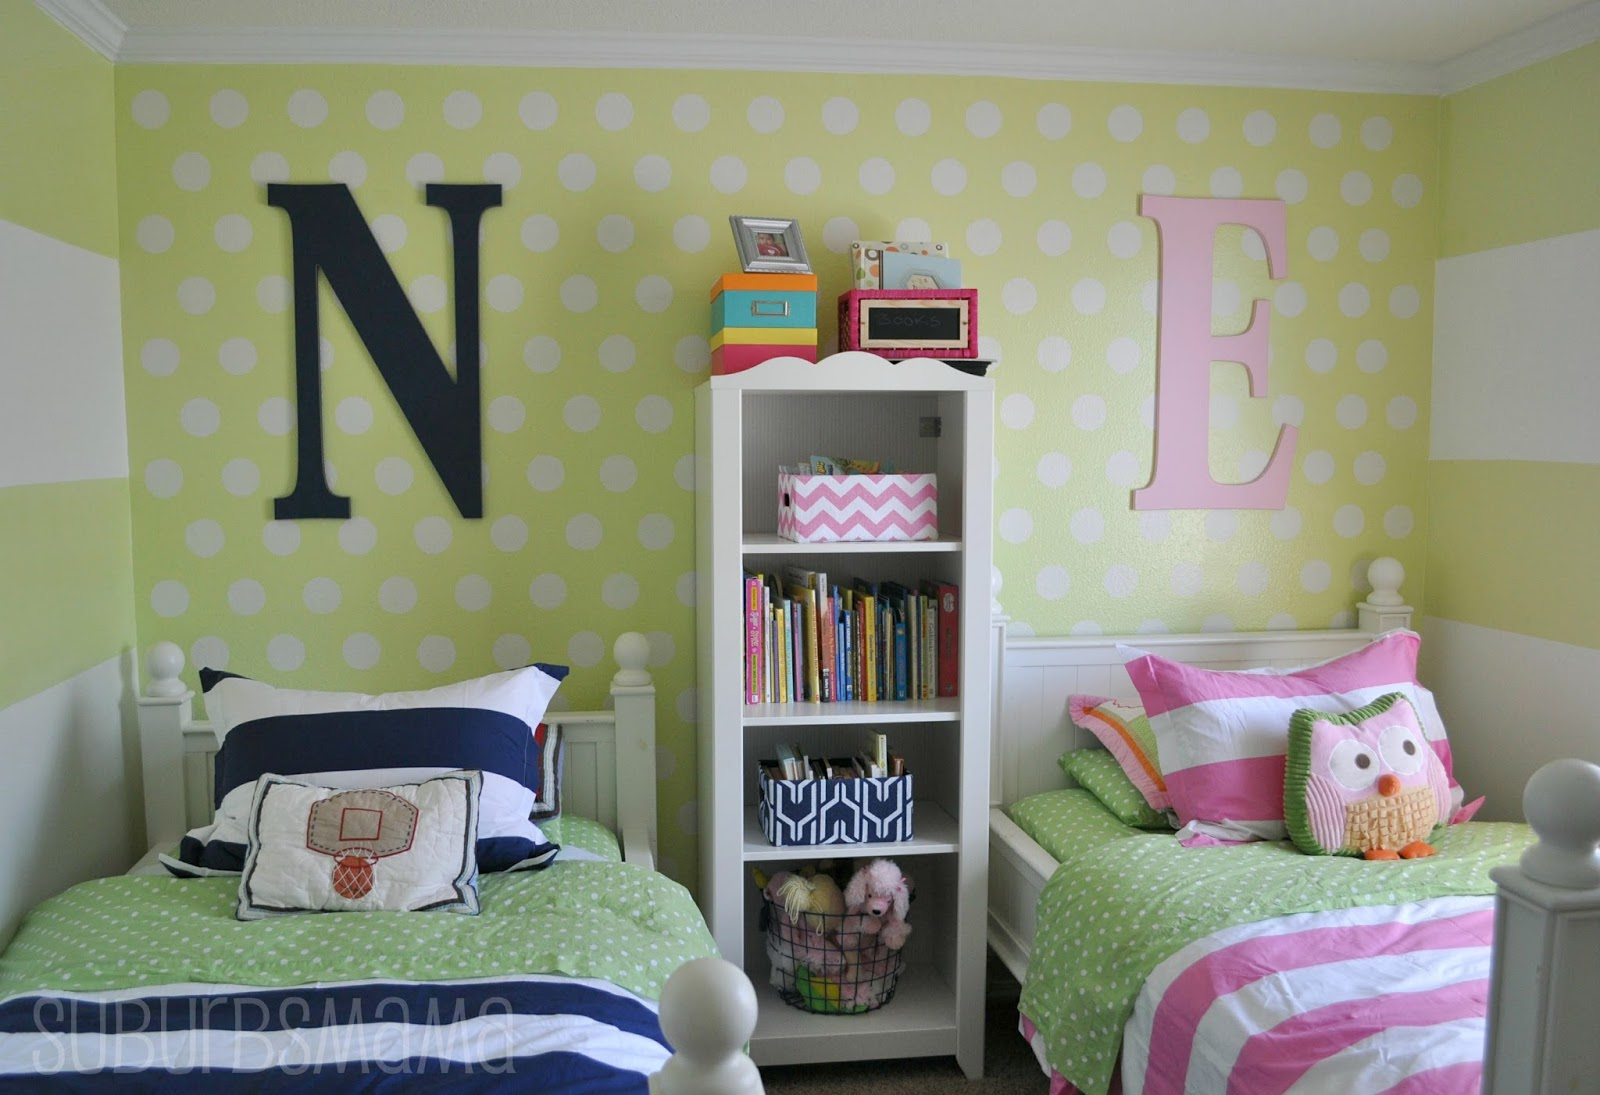 Suburbs mama shared kids room take 3 for Bedroom ideas for girls sharing a room